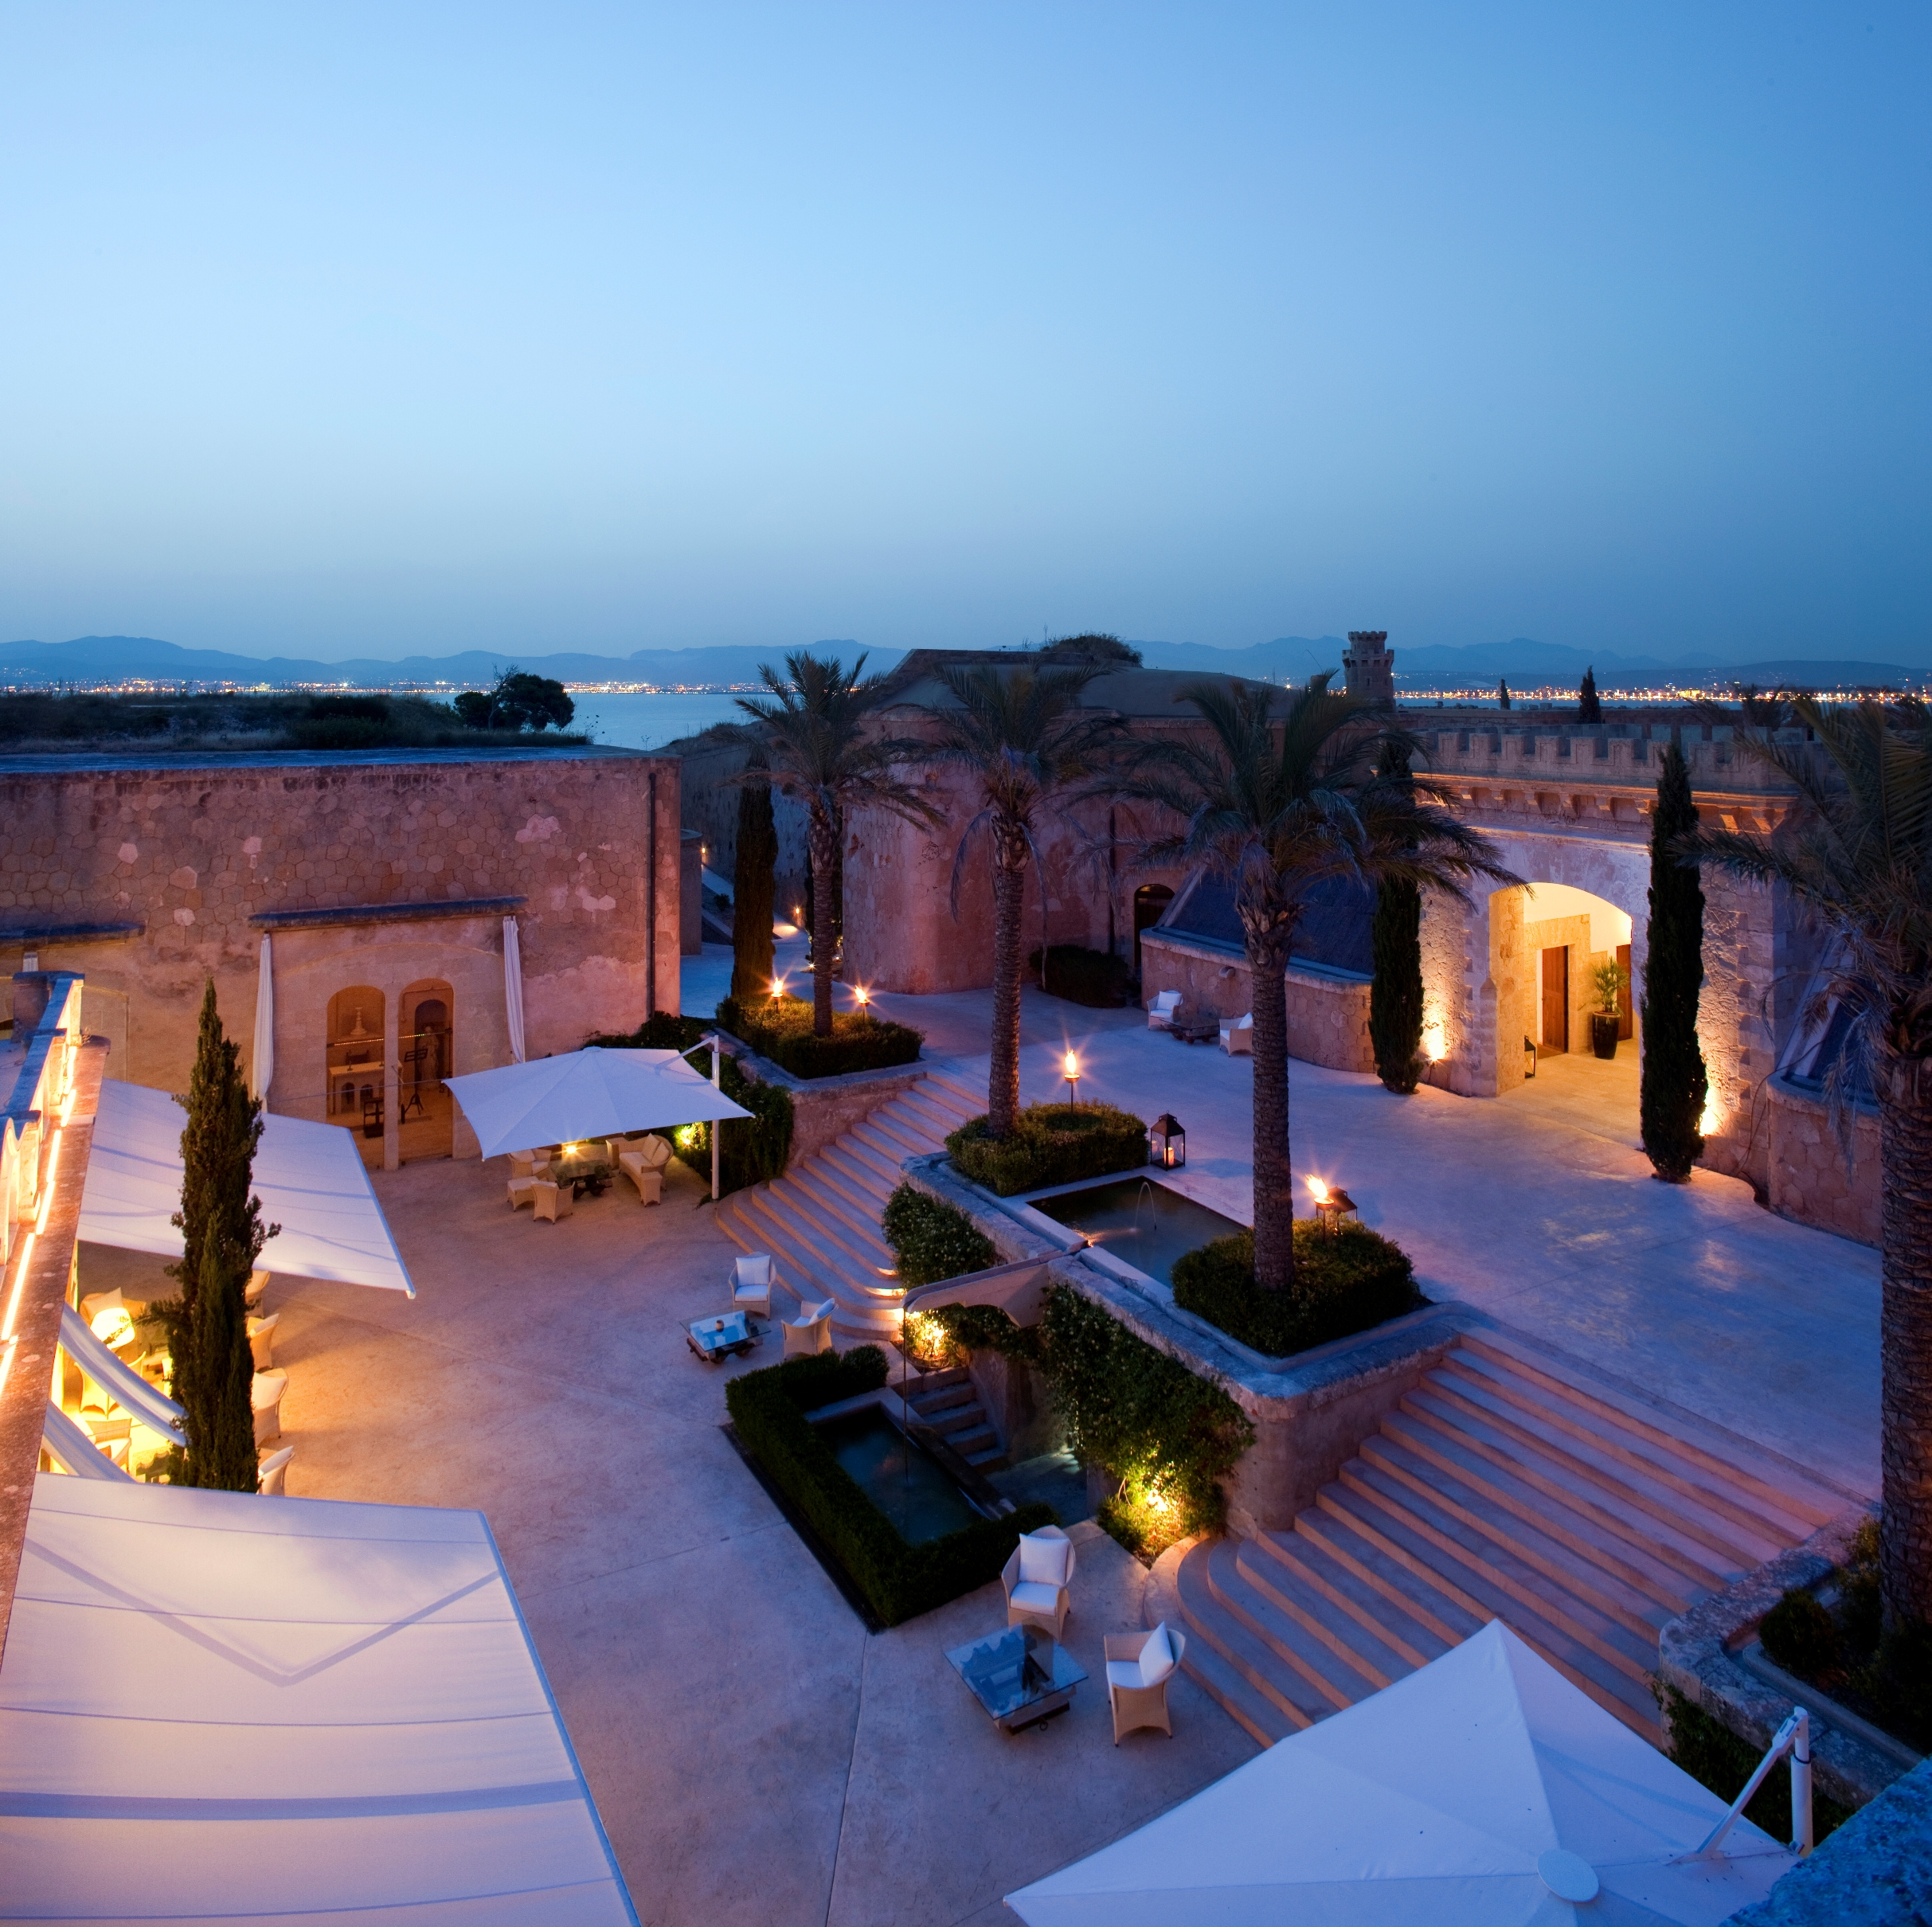 CAP ROCAT courtyard at night seen from above .3.5MB.JPG